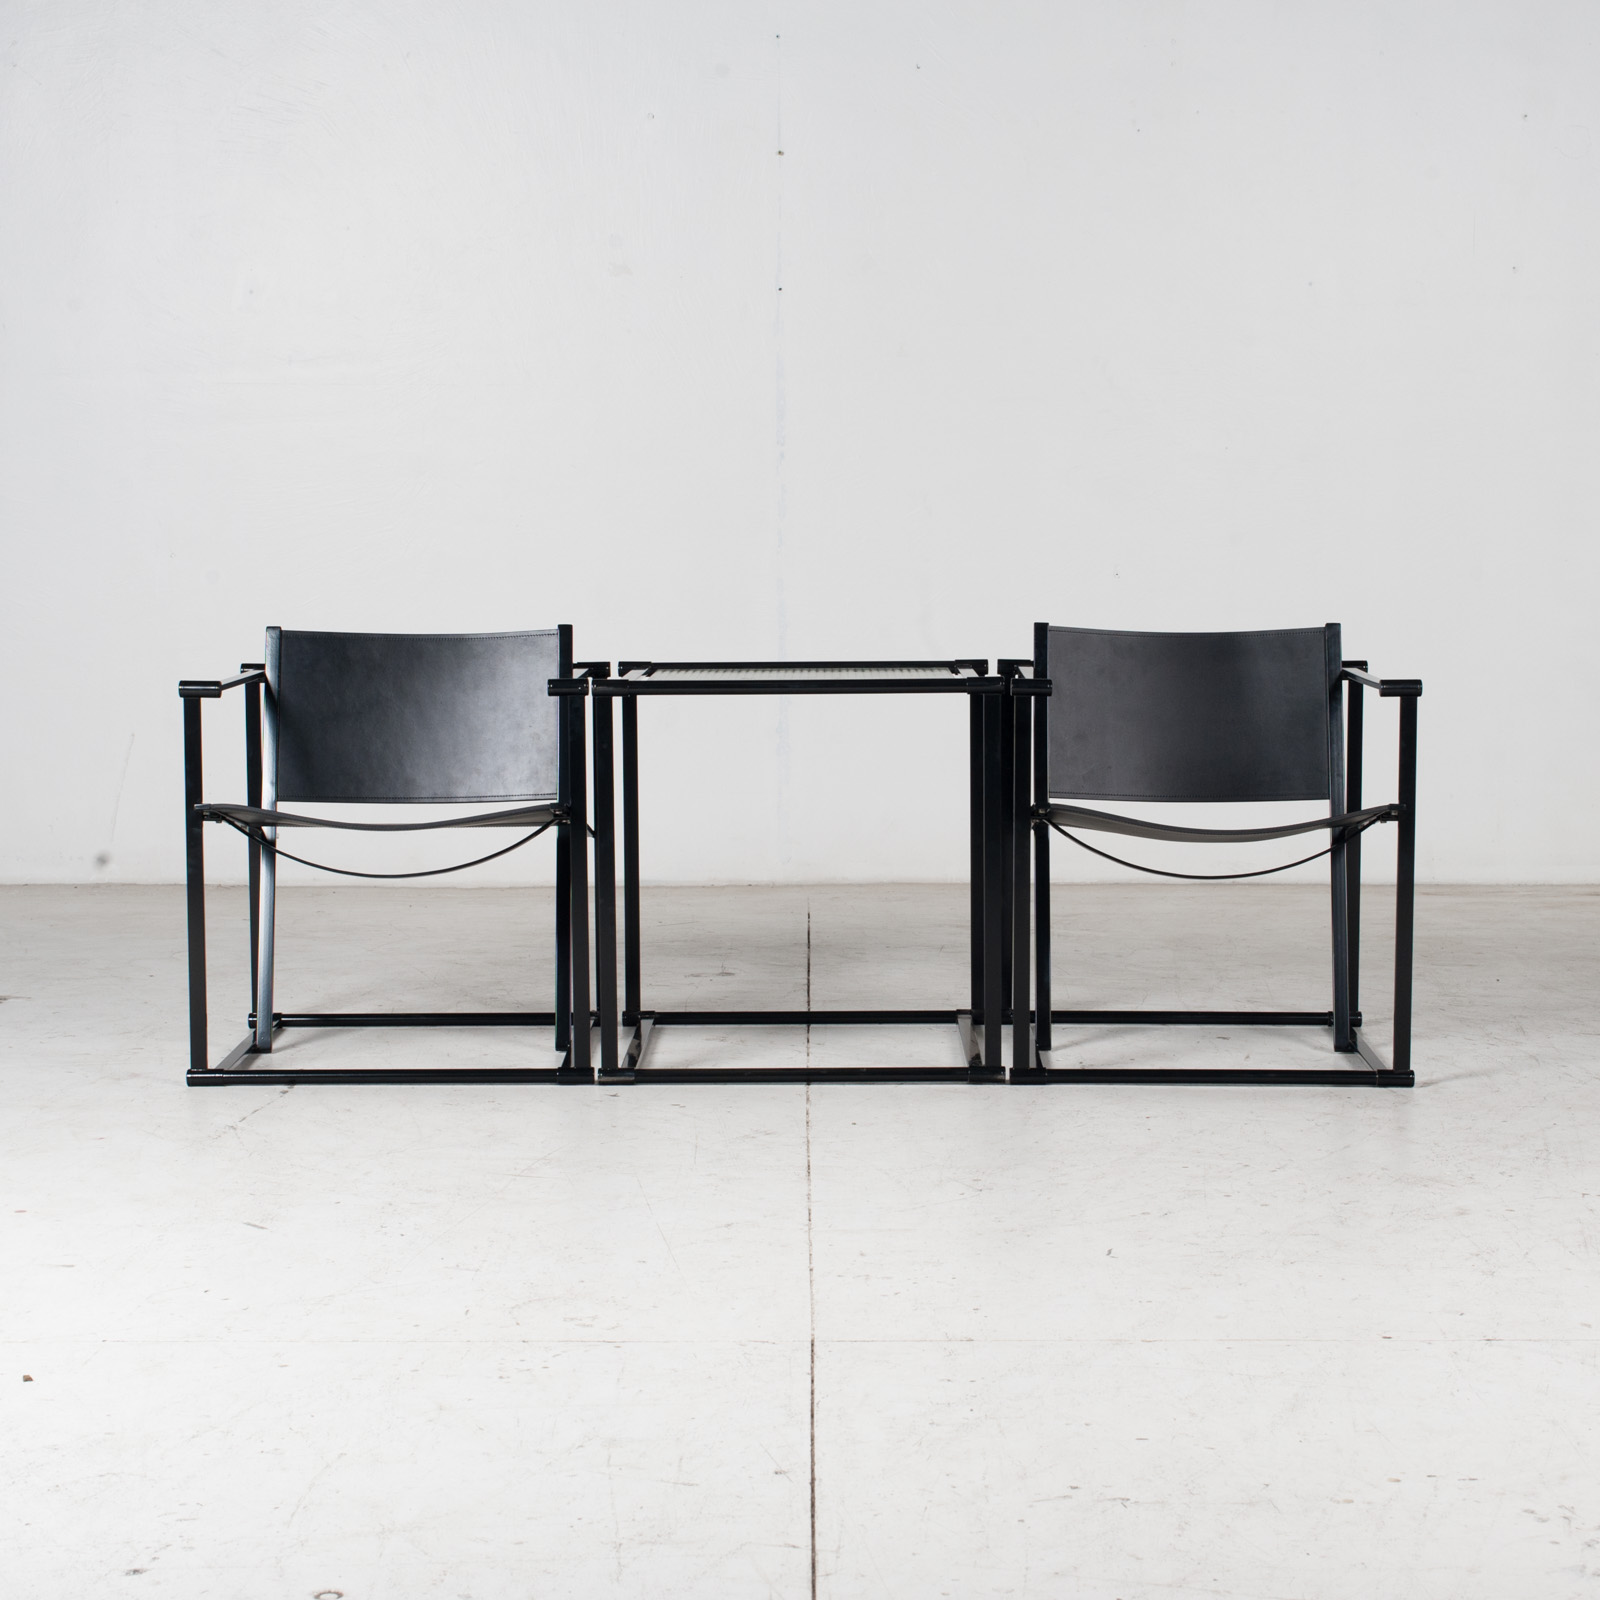 Pair Of Fm60 Cubic Chairs With Table By Radboud Van Beekum For Pastoe, 1980s, The Netherlands 15